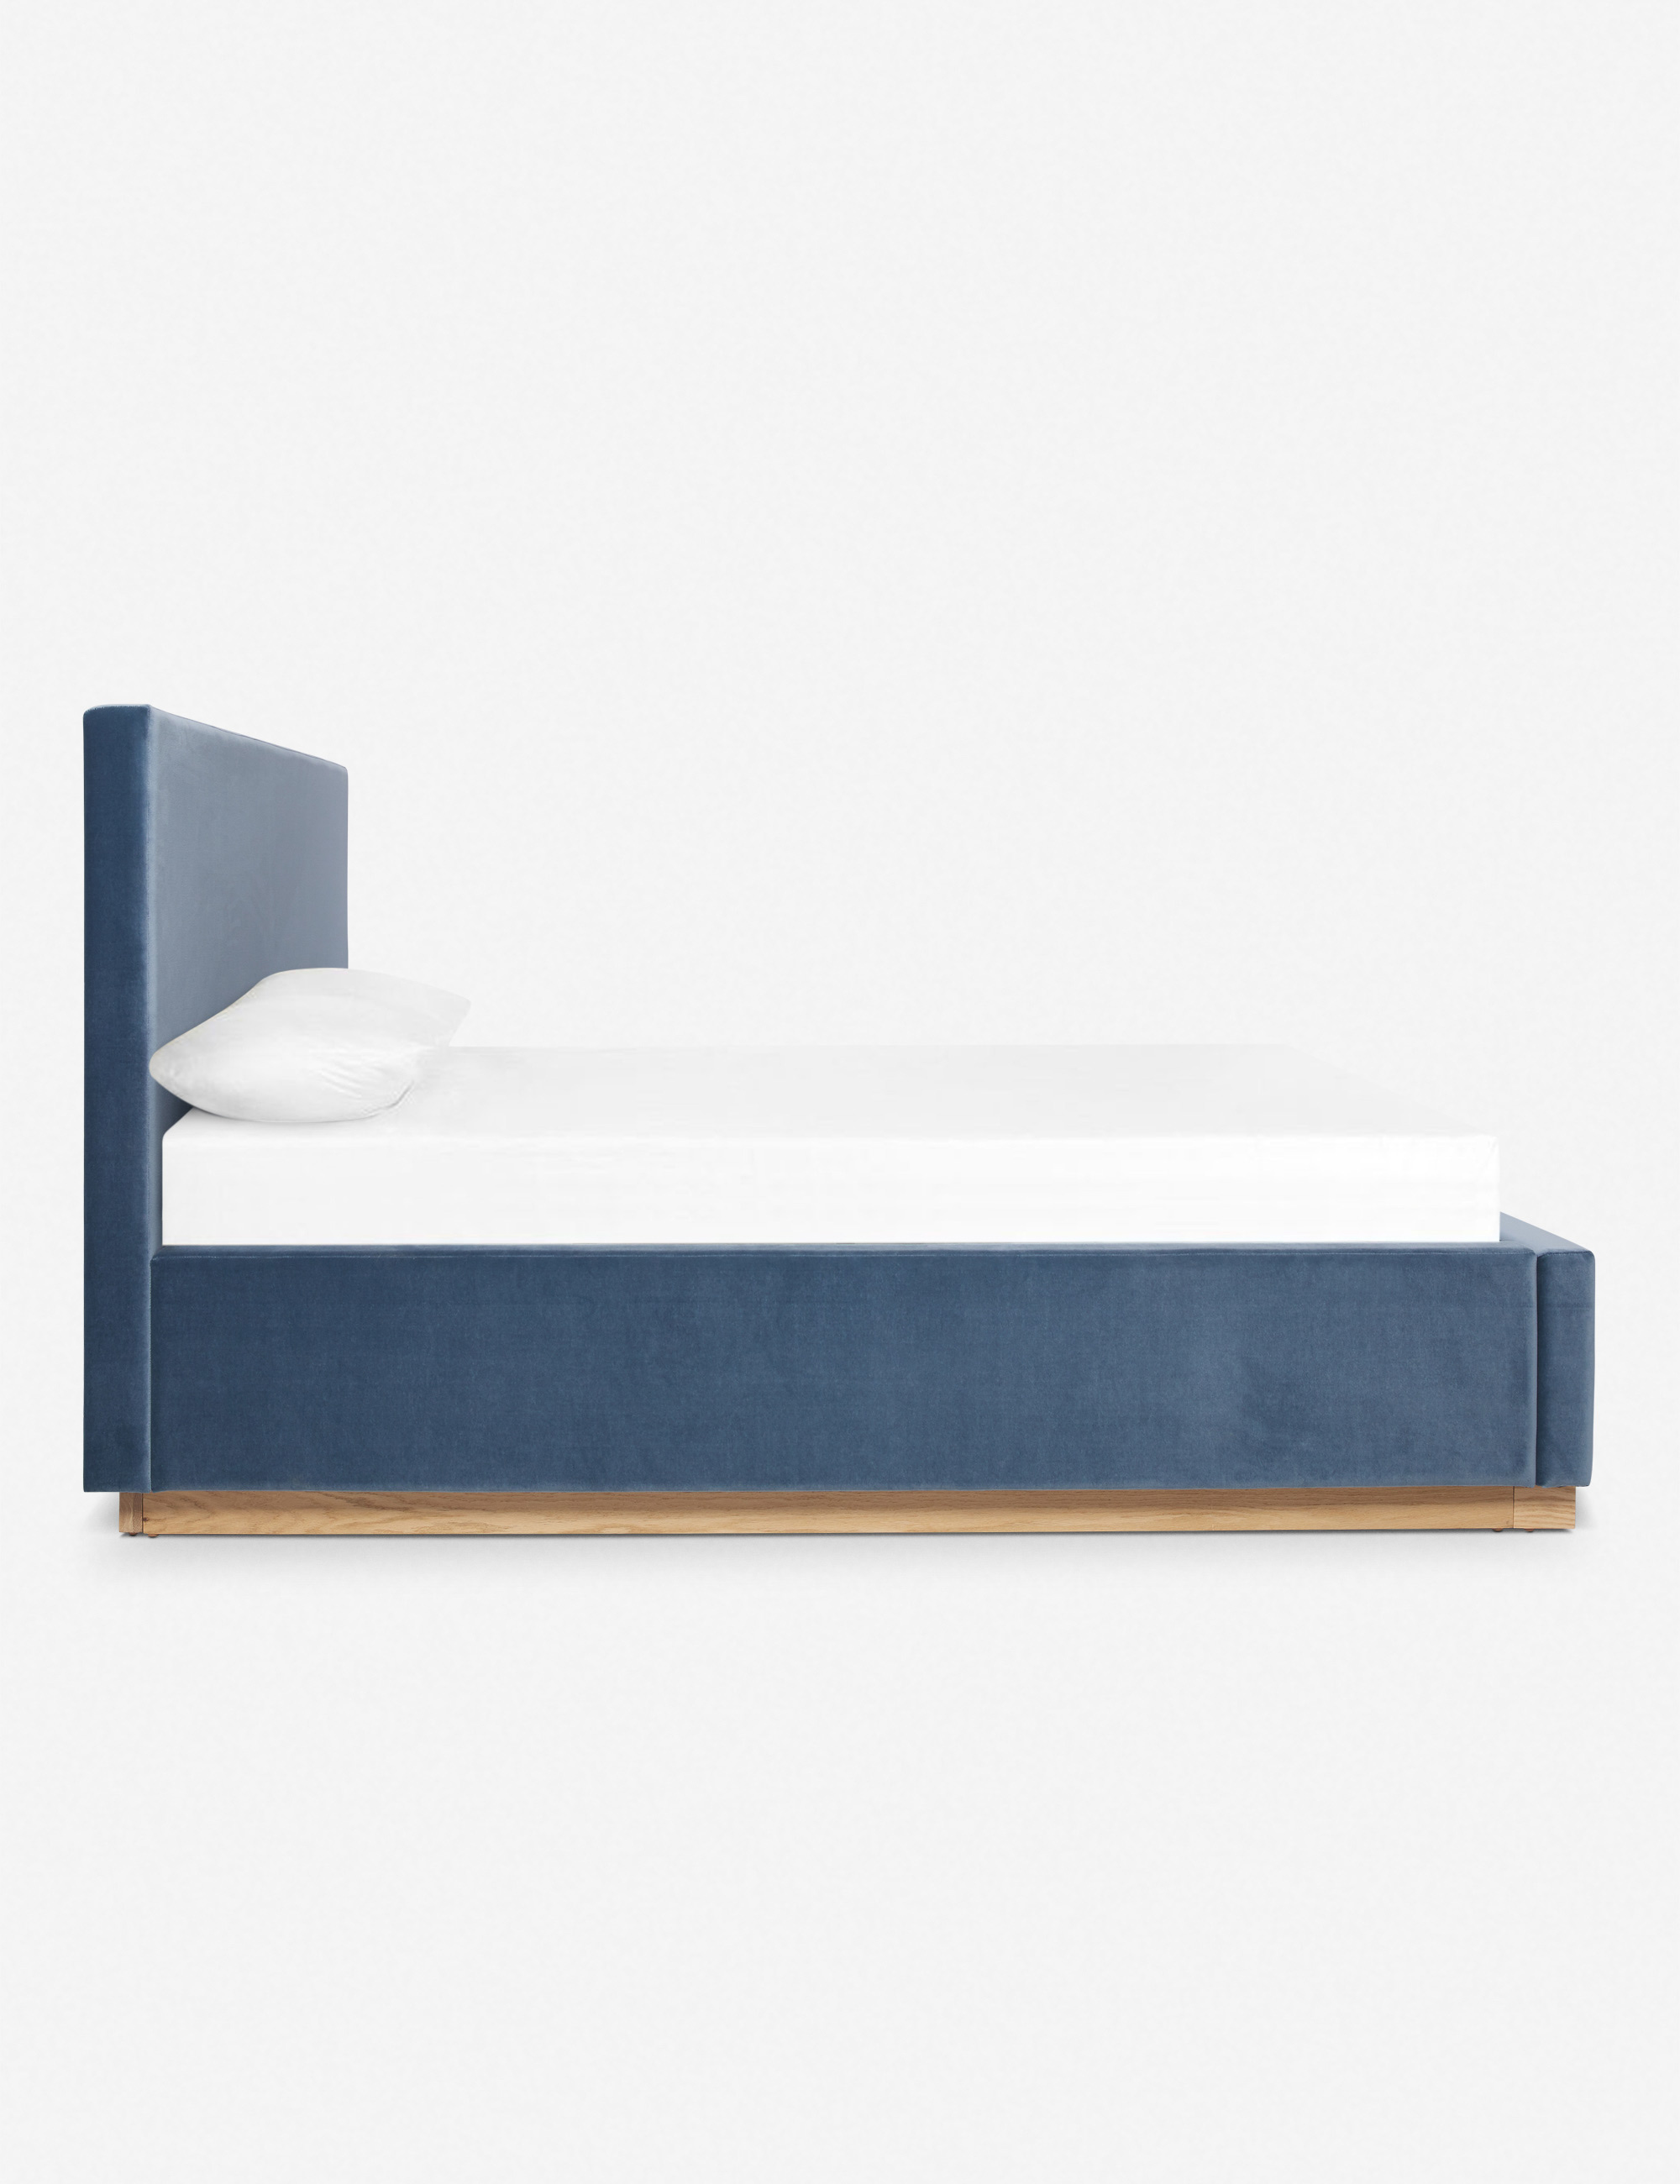 GINNY_MACDONALD_Lockwood-Bed-Velvet-Harbour-5